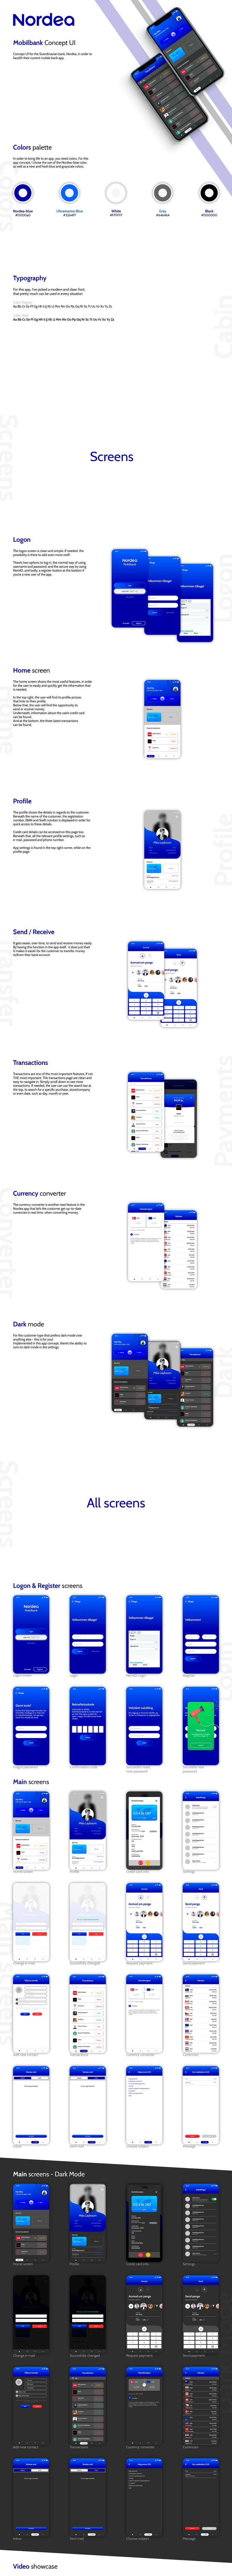 Nordea Behance Project.png